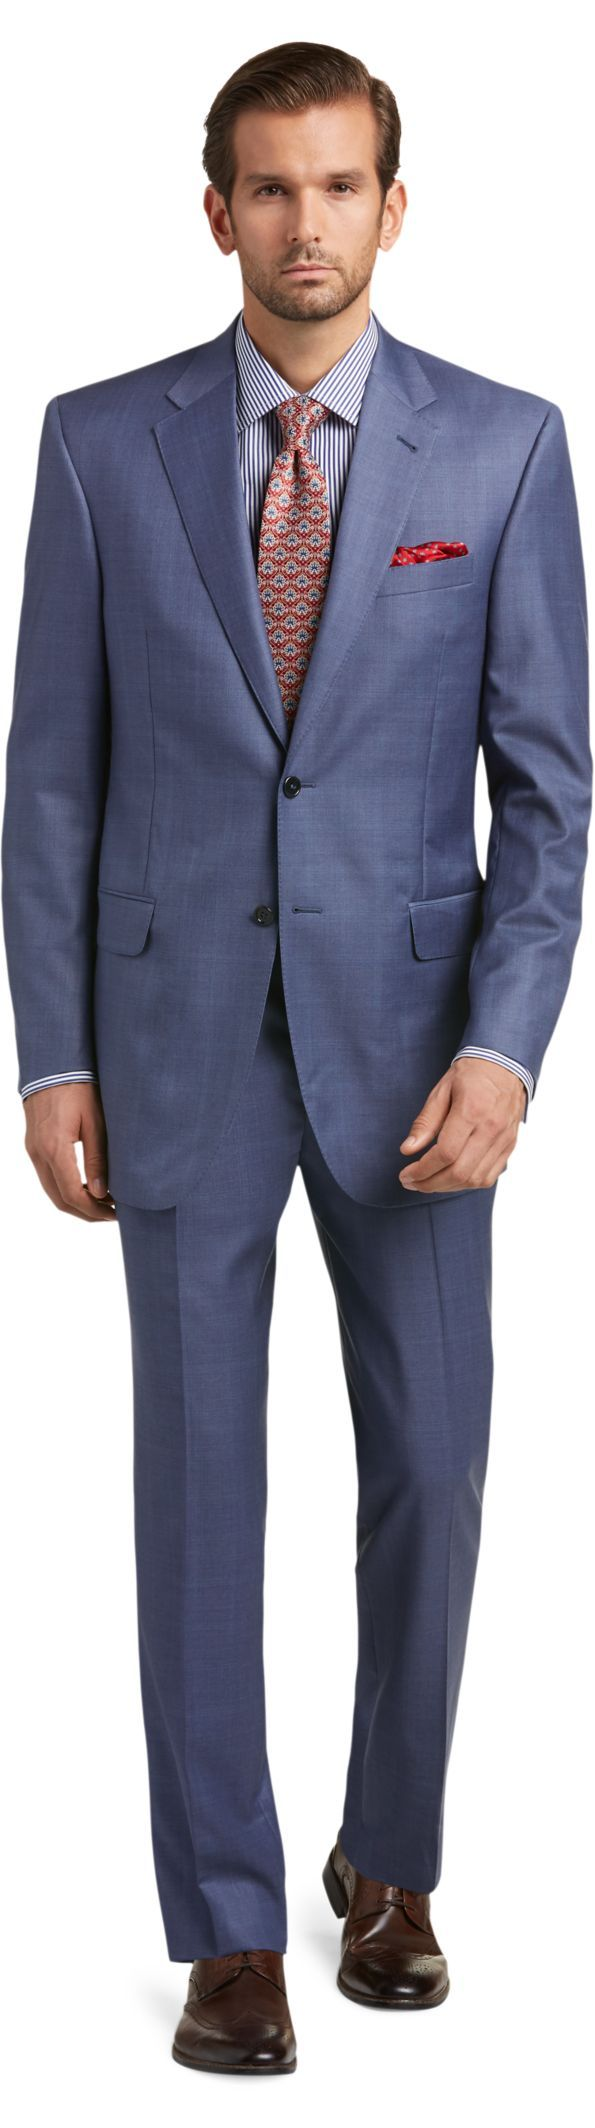 ea21794deae Signature Gold Centocinquanta Traditional Fit Herringbone Suit - Big   Tall  CLEARANCE Herringbone Suit